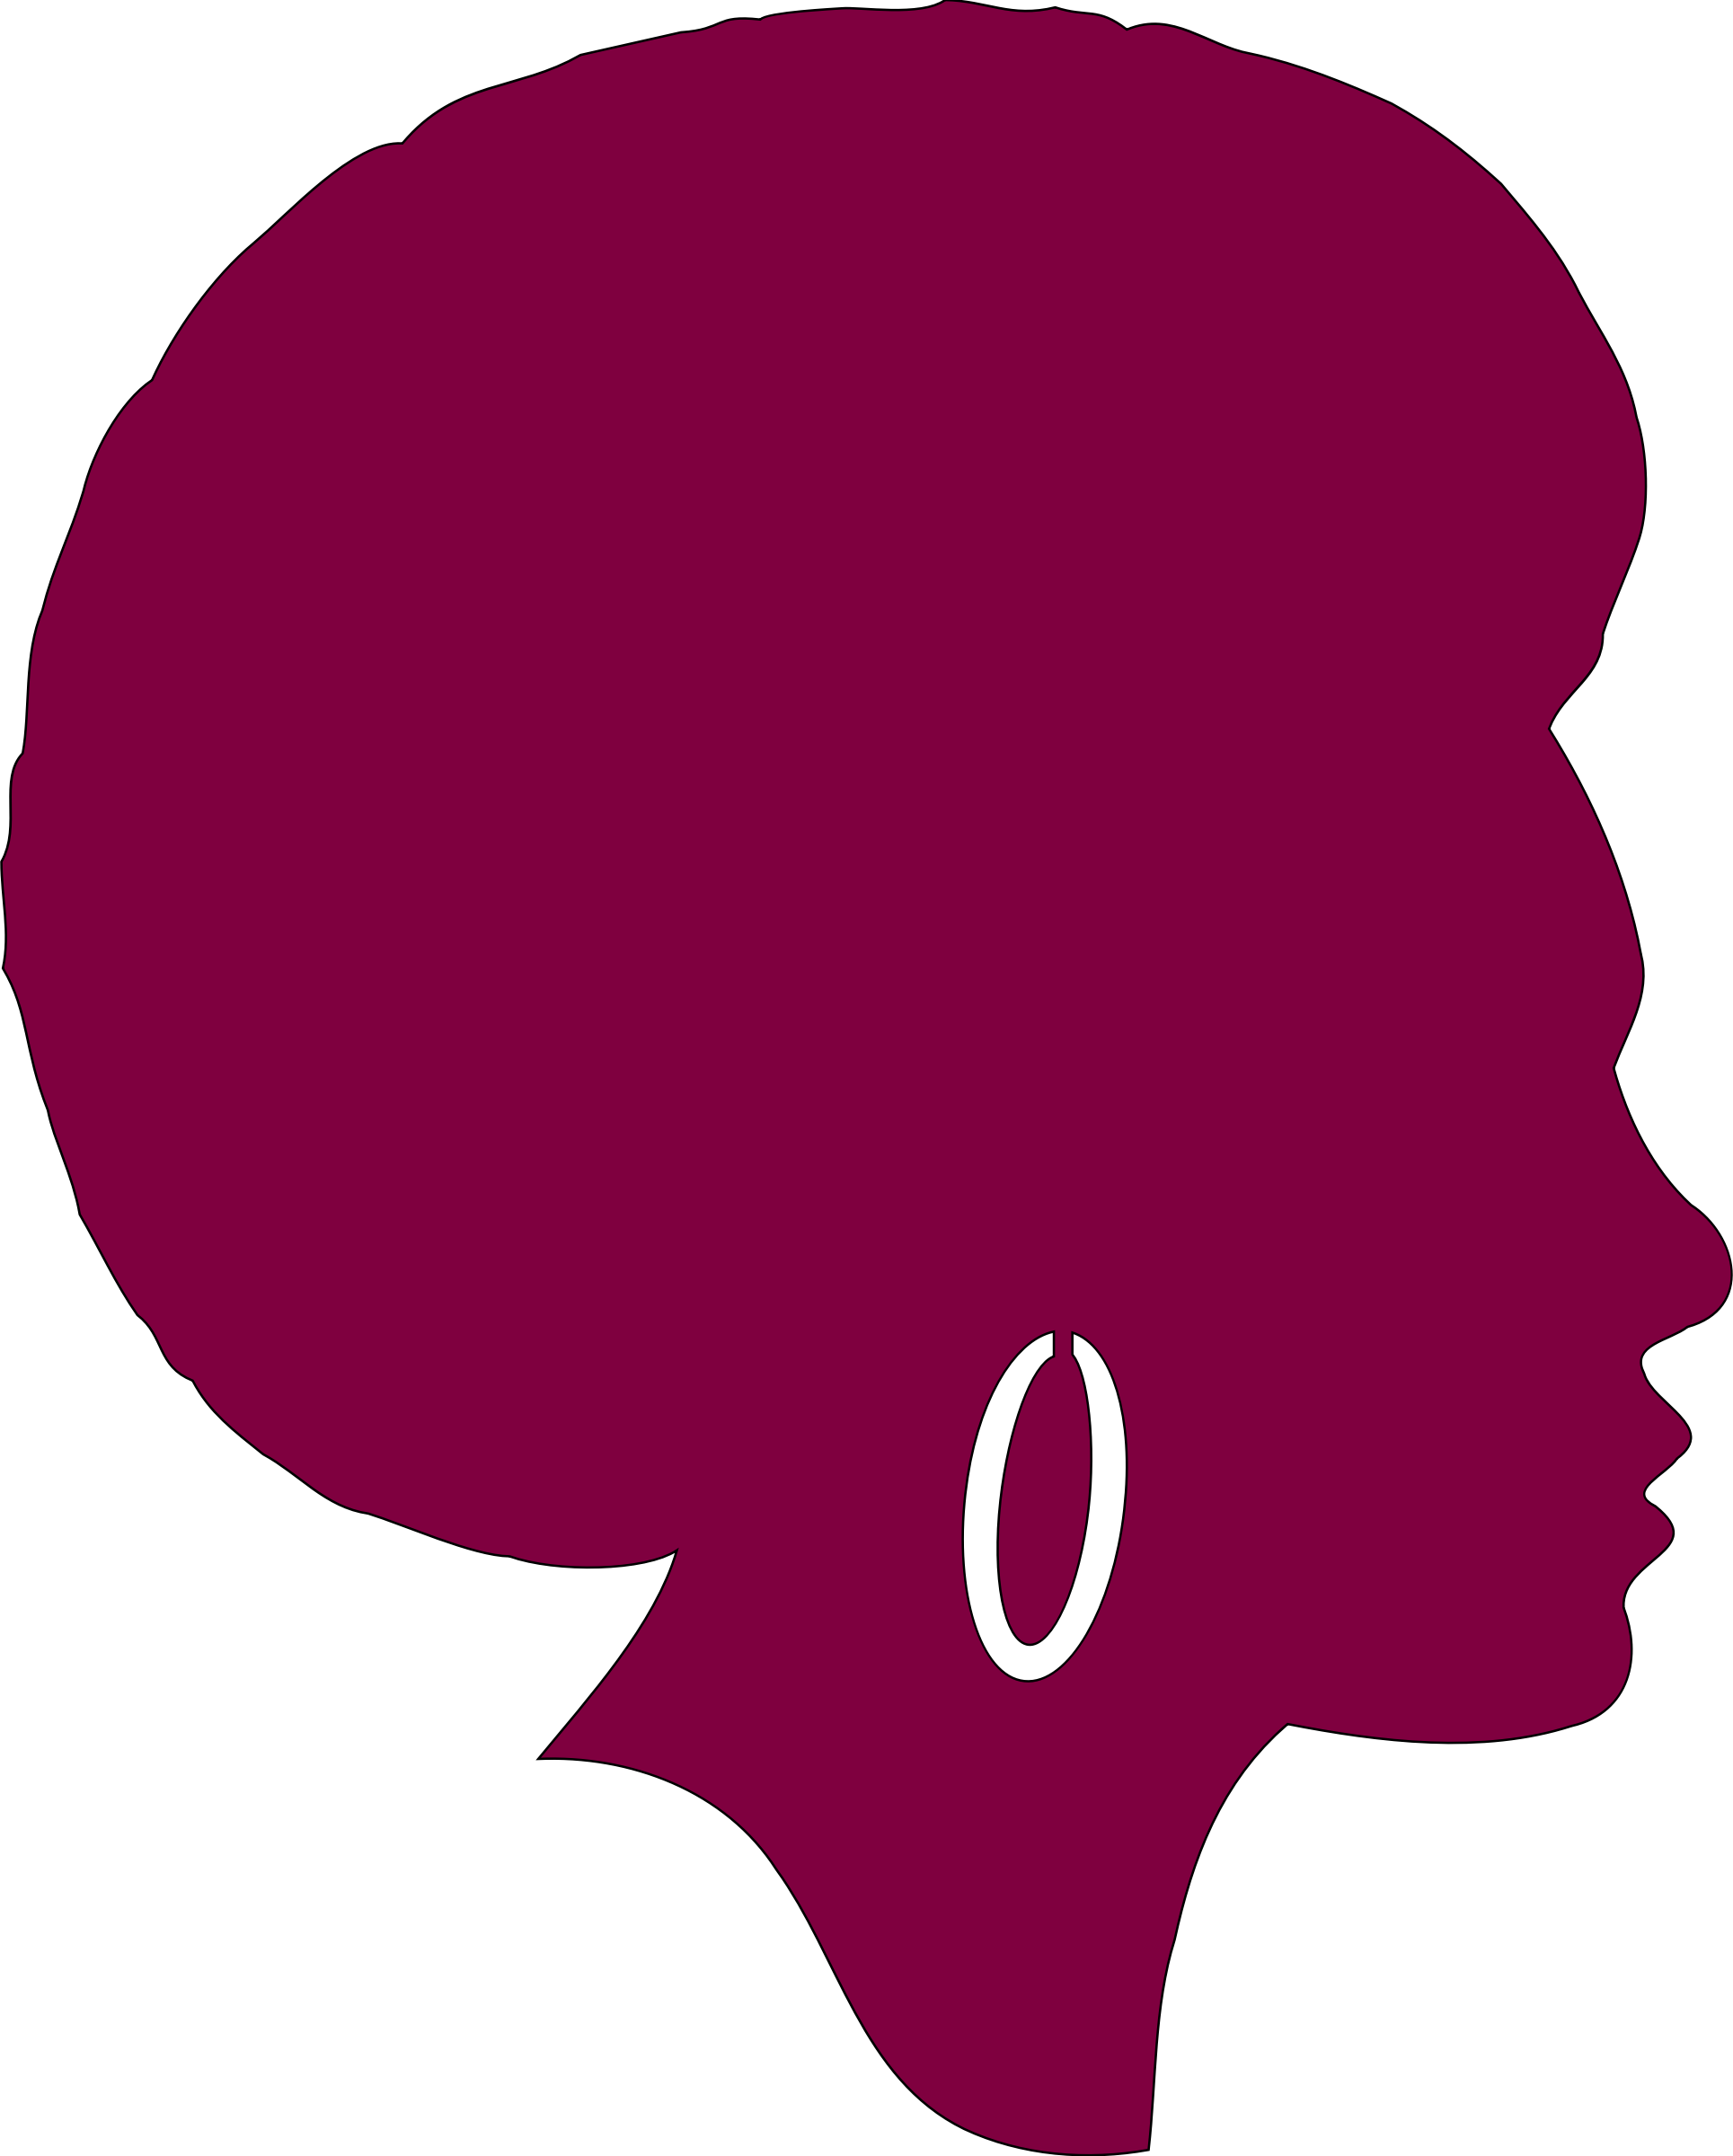 Africa silhouette png. African american female remix